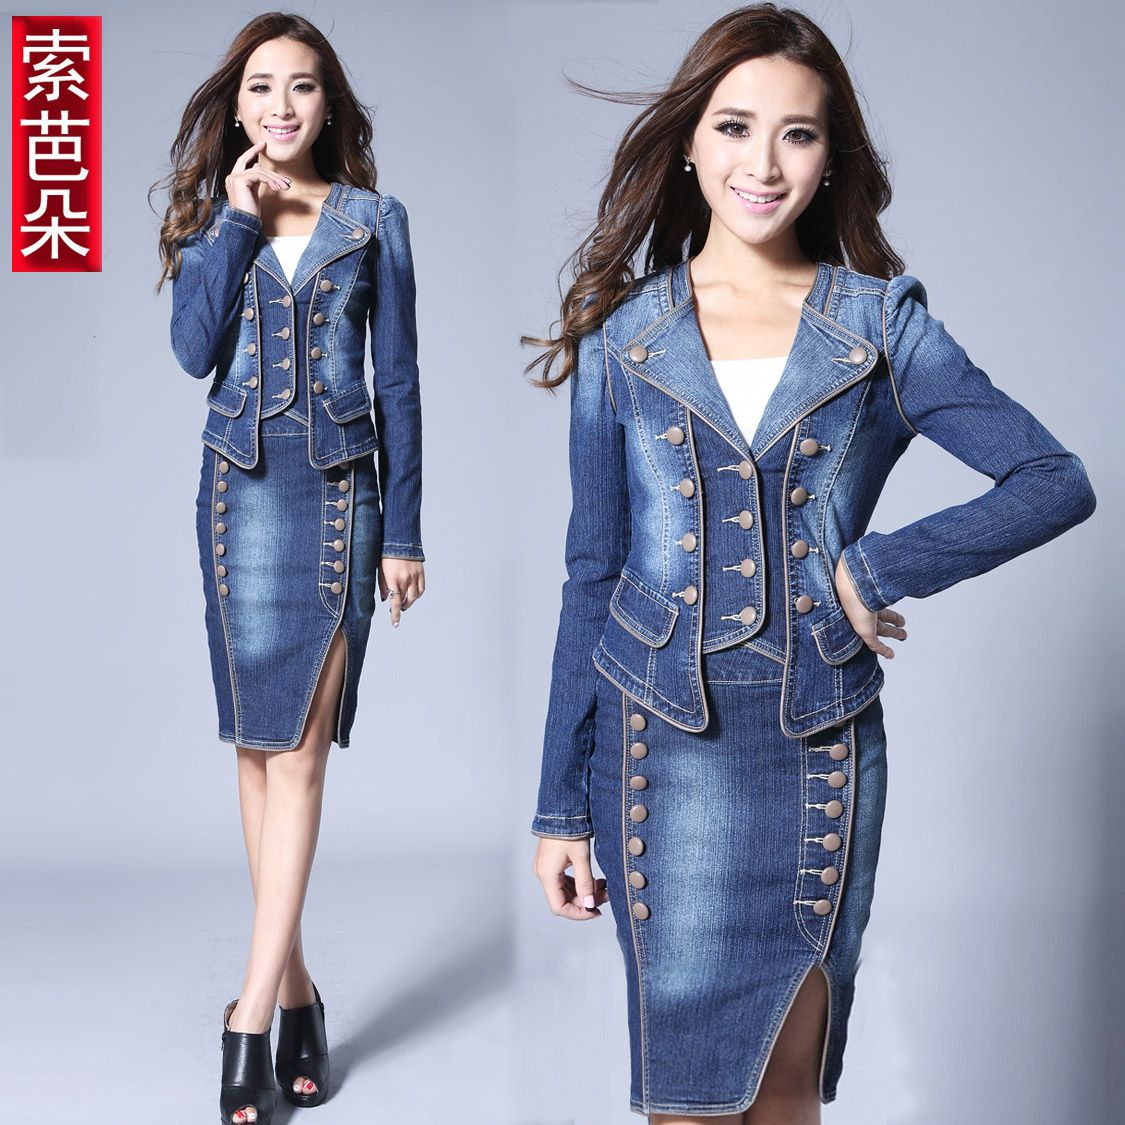 Cheap skirt suits on sale at bargain price buy quality dress and